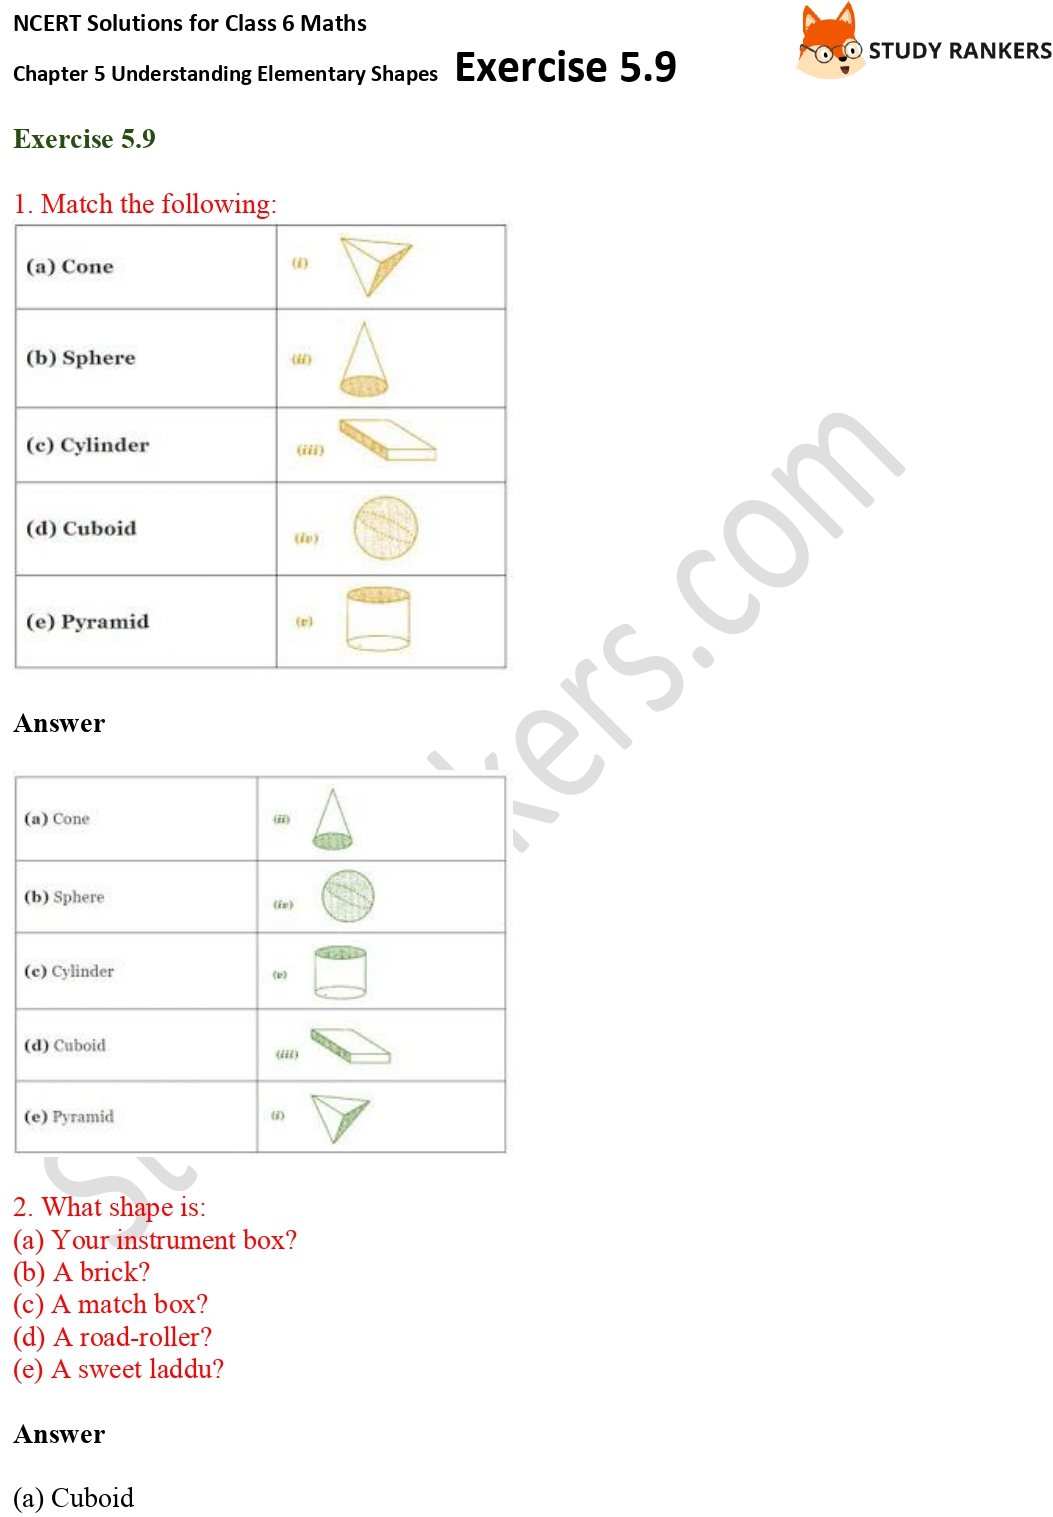 NCERT Solutions for Class 6 Maths Chapter 5 Understanding Elementary Shapes Exercise 5.9 Part 1